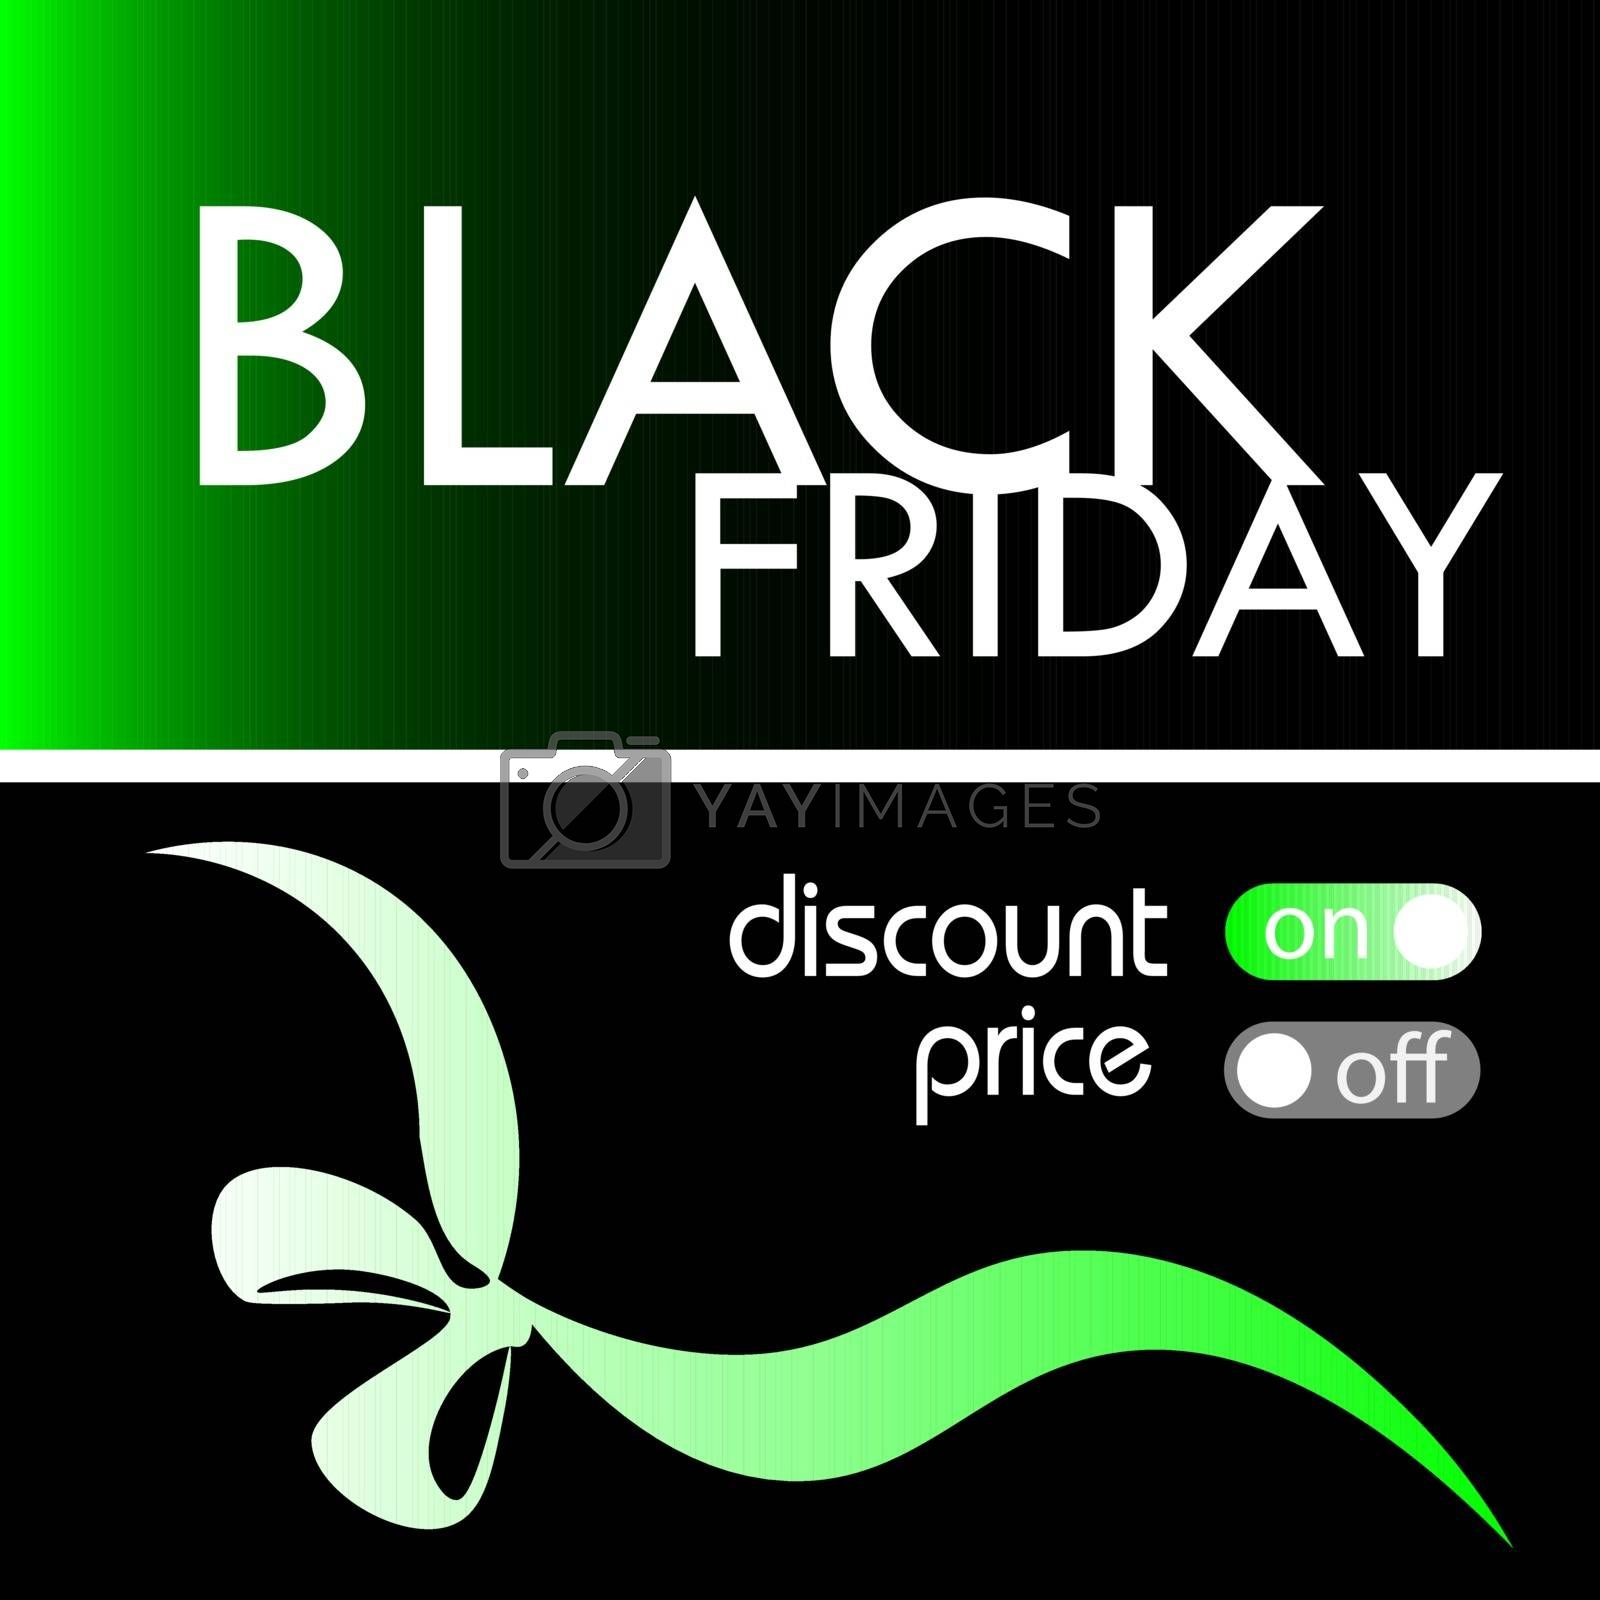 Black friday card, flyer or banner with tumblers and gift ribbon on green and black gradient background